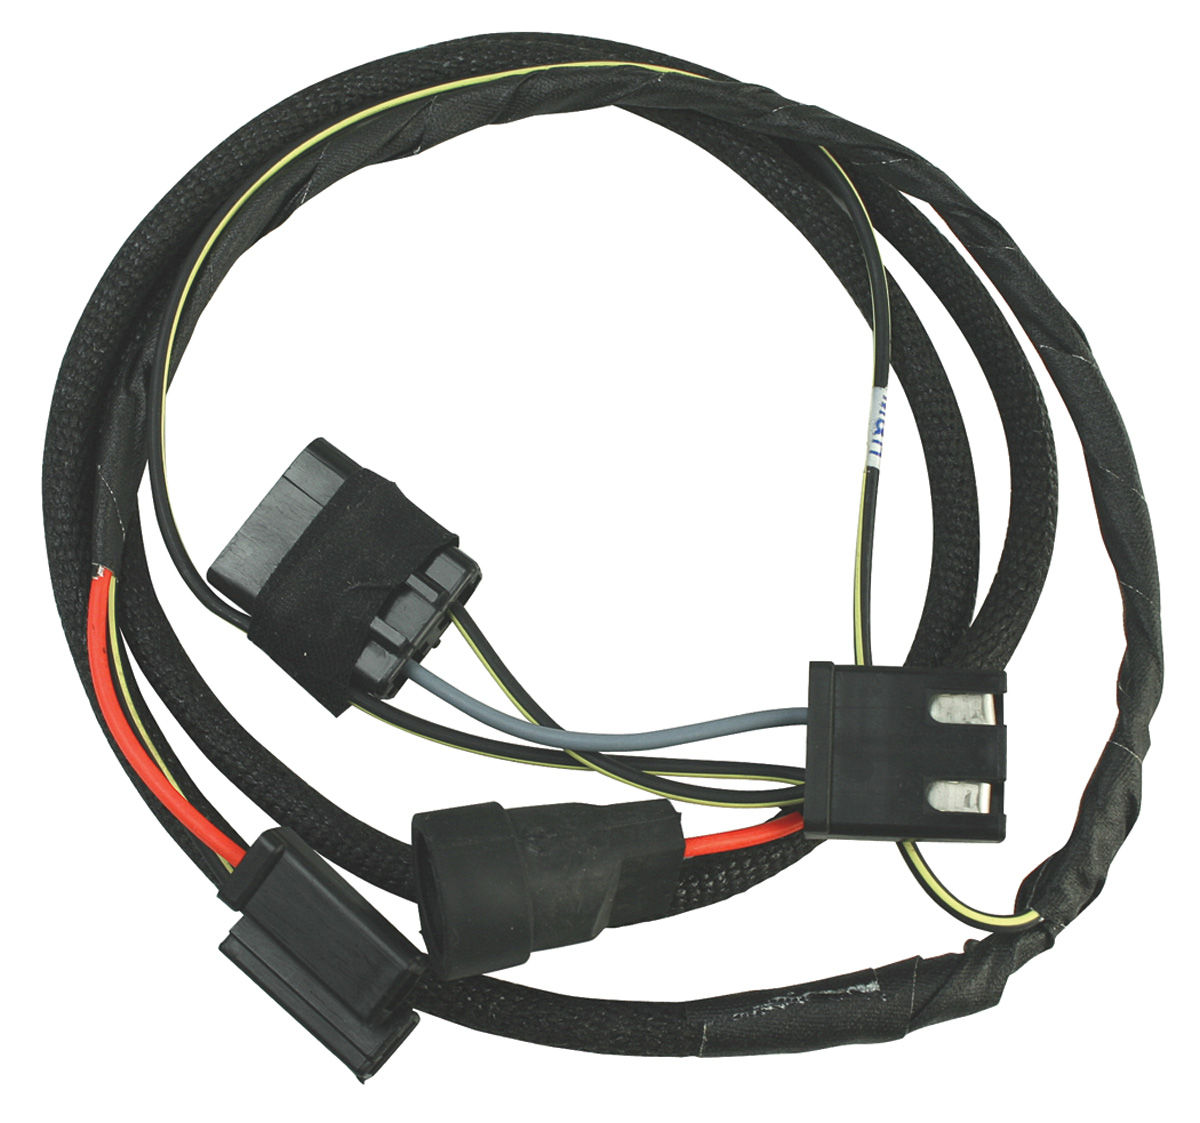 th400 kickdown case connector club car wiring diagram 36 volt 67 chevelle harness free engine image for user